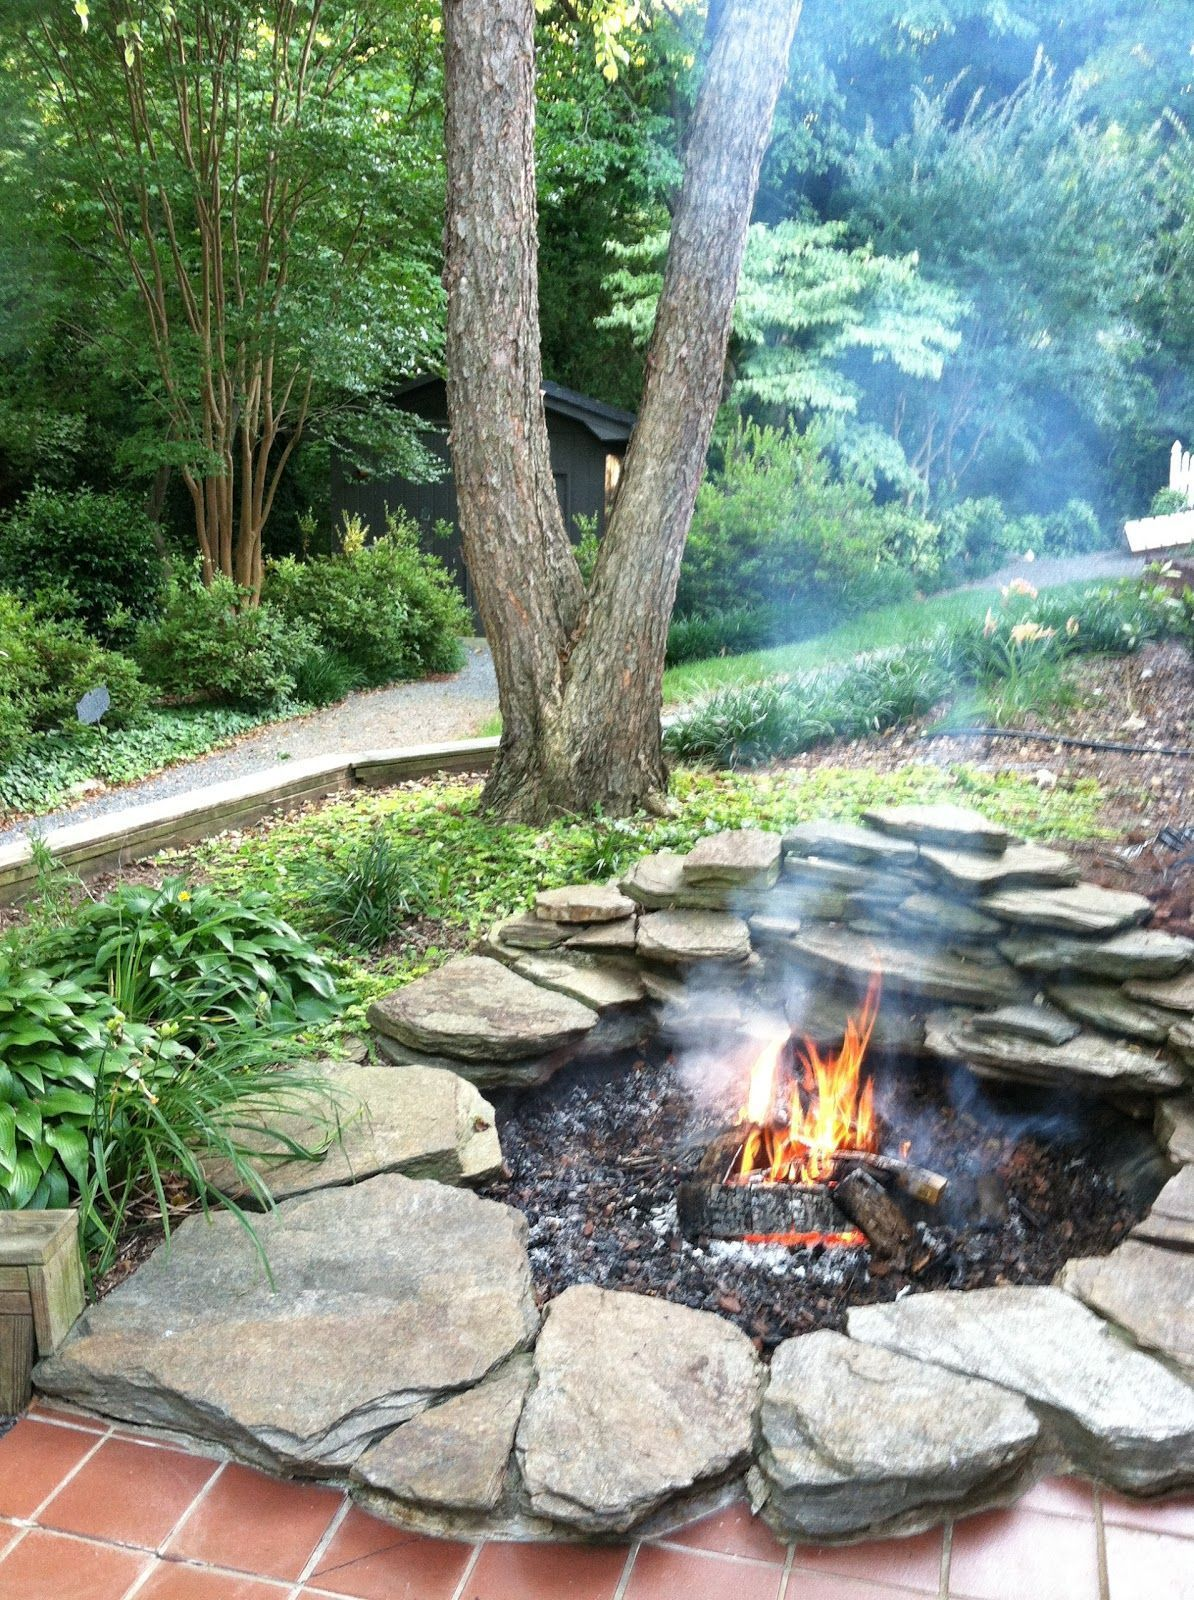 20 attractive diy firepit ideas diy fireplace ideas outdoor firepit on a budget do it yourself firepit projects and fireplaces for your yard patio porch and home solutioingenieria Choice Image